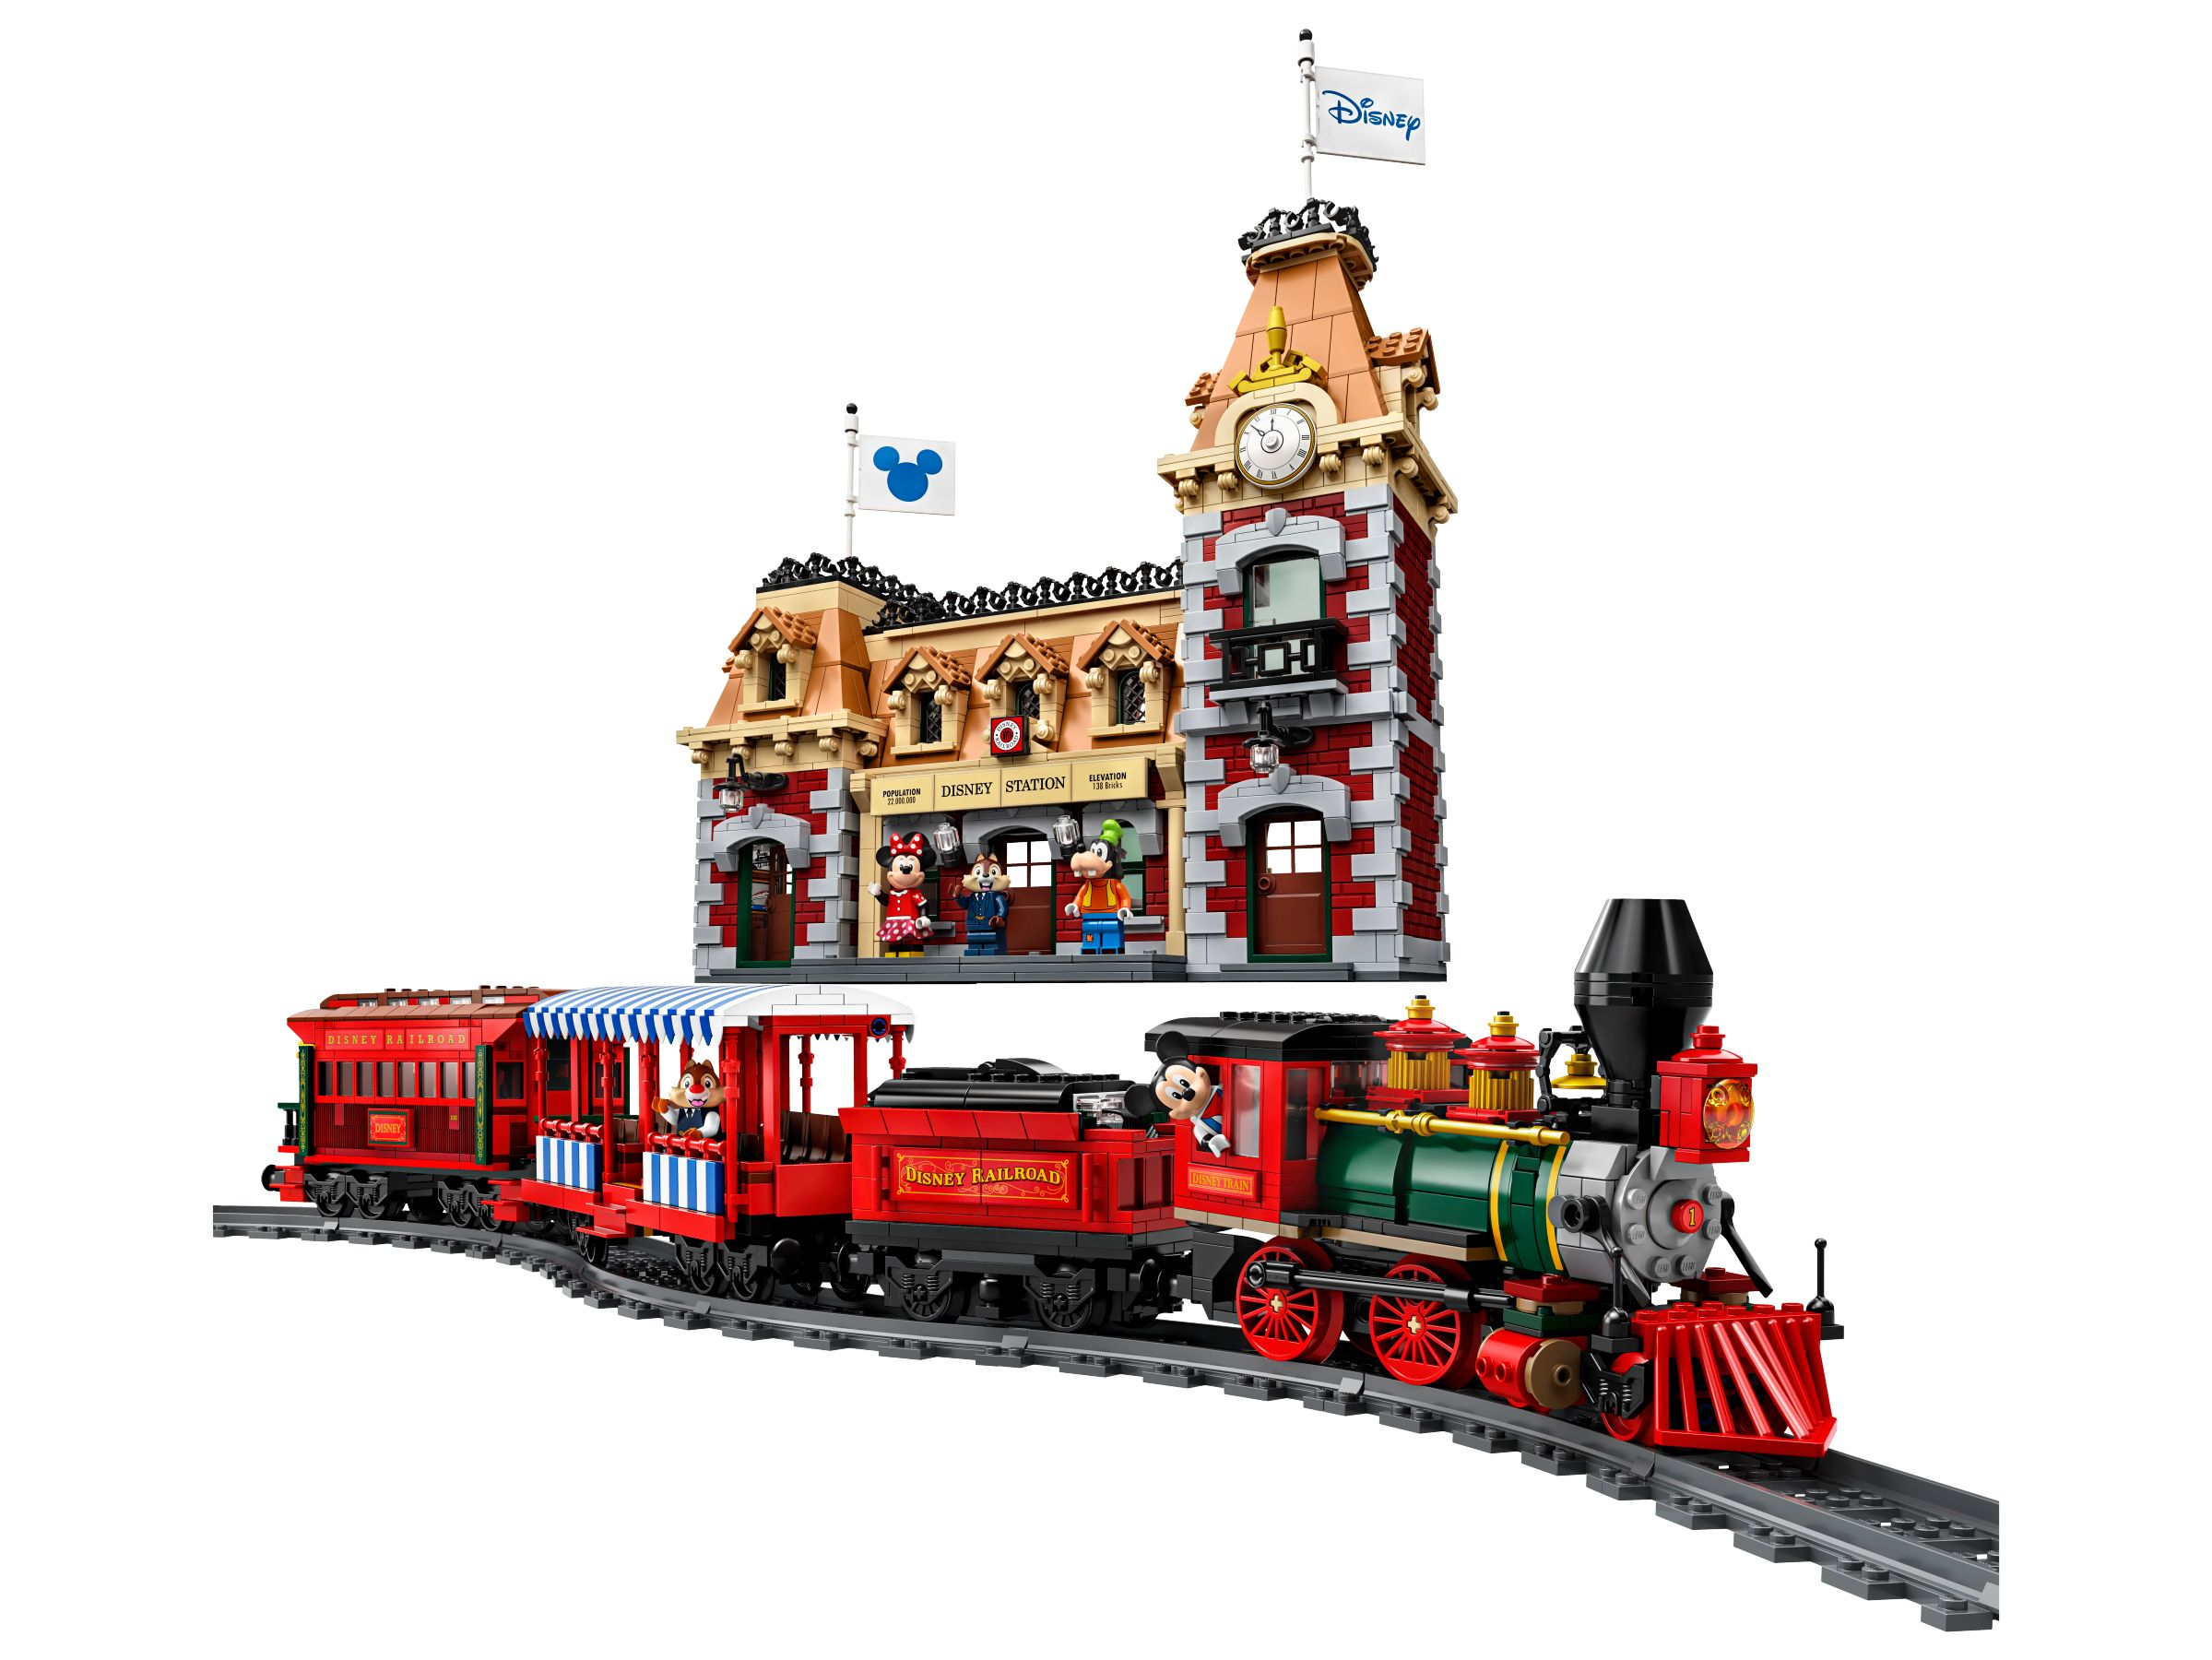 LEGO Advanced Models 71044 Disney Zug mit Bahnhof